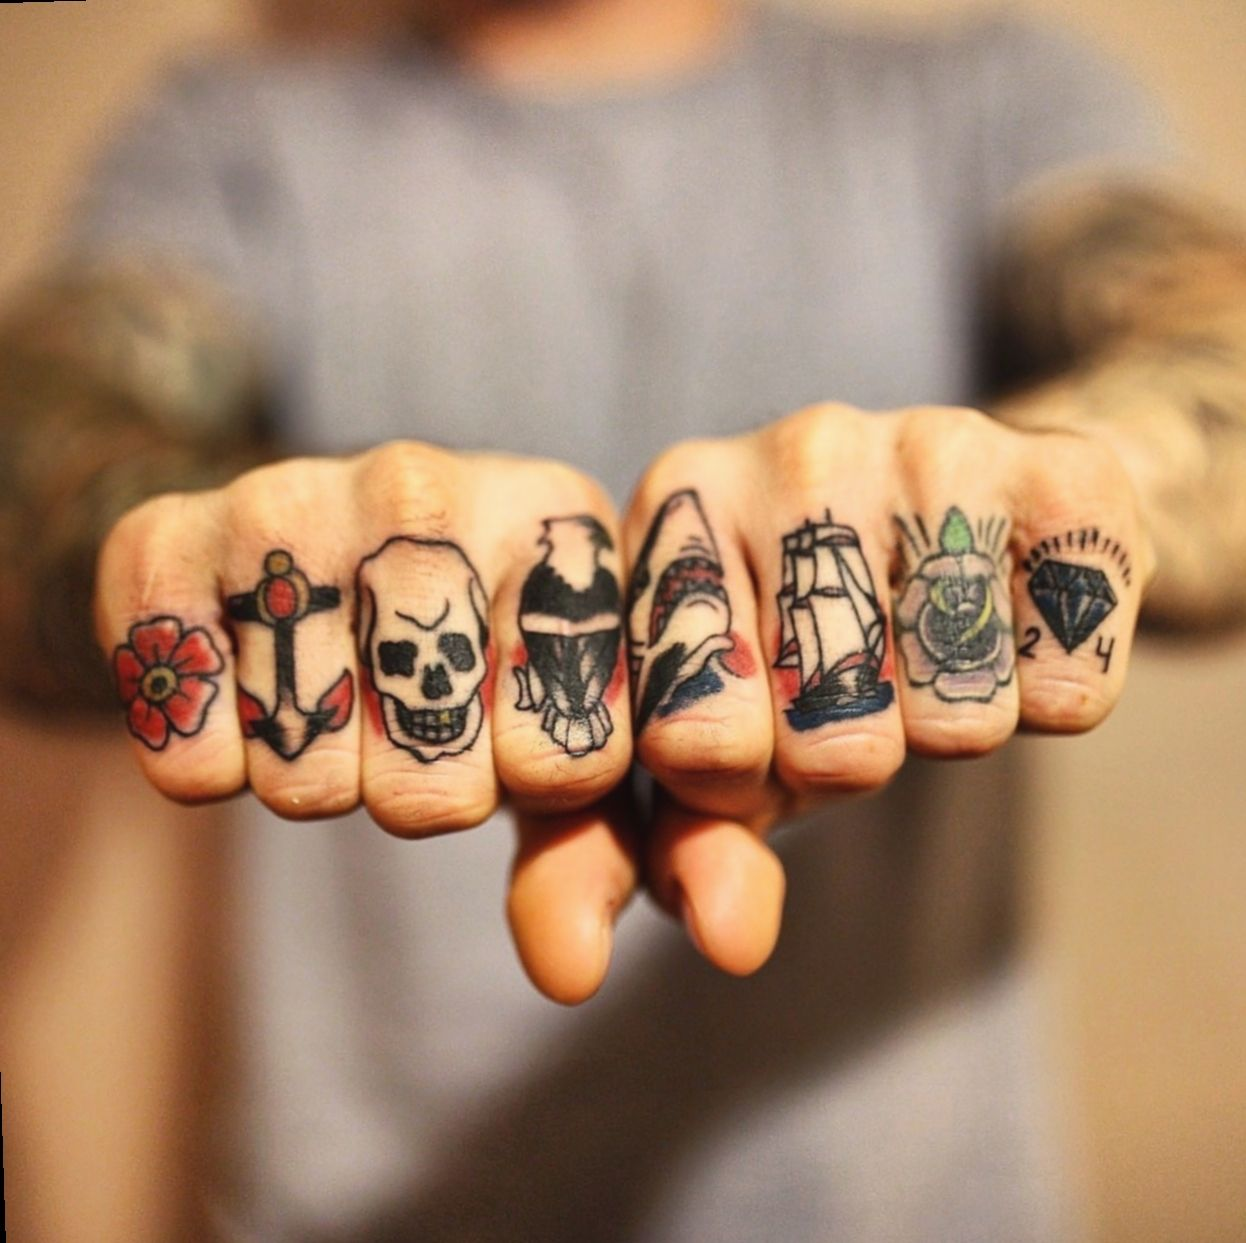 11 Tattoo Hand Men Old School In 2020 Traditional Hand Tattoo Hand Tattoos Knuckle Tattoos